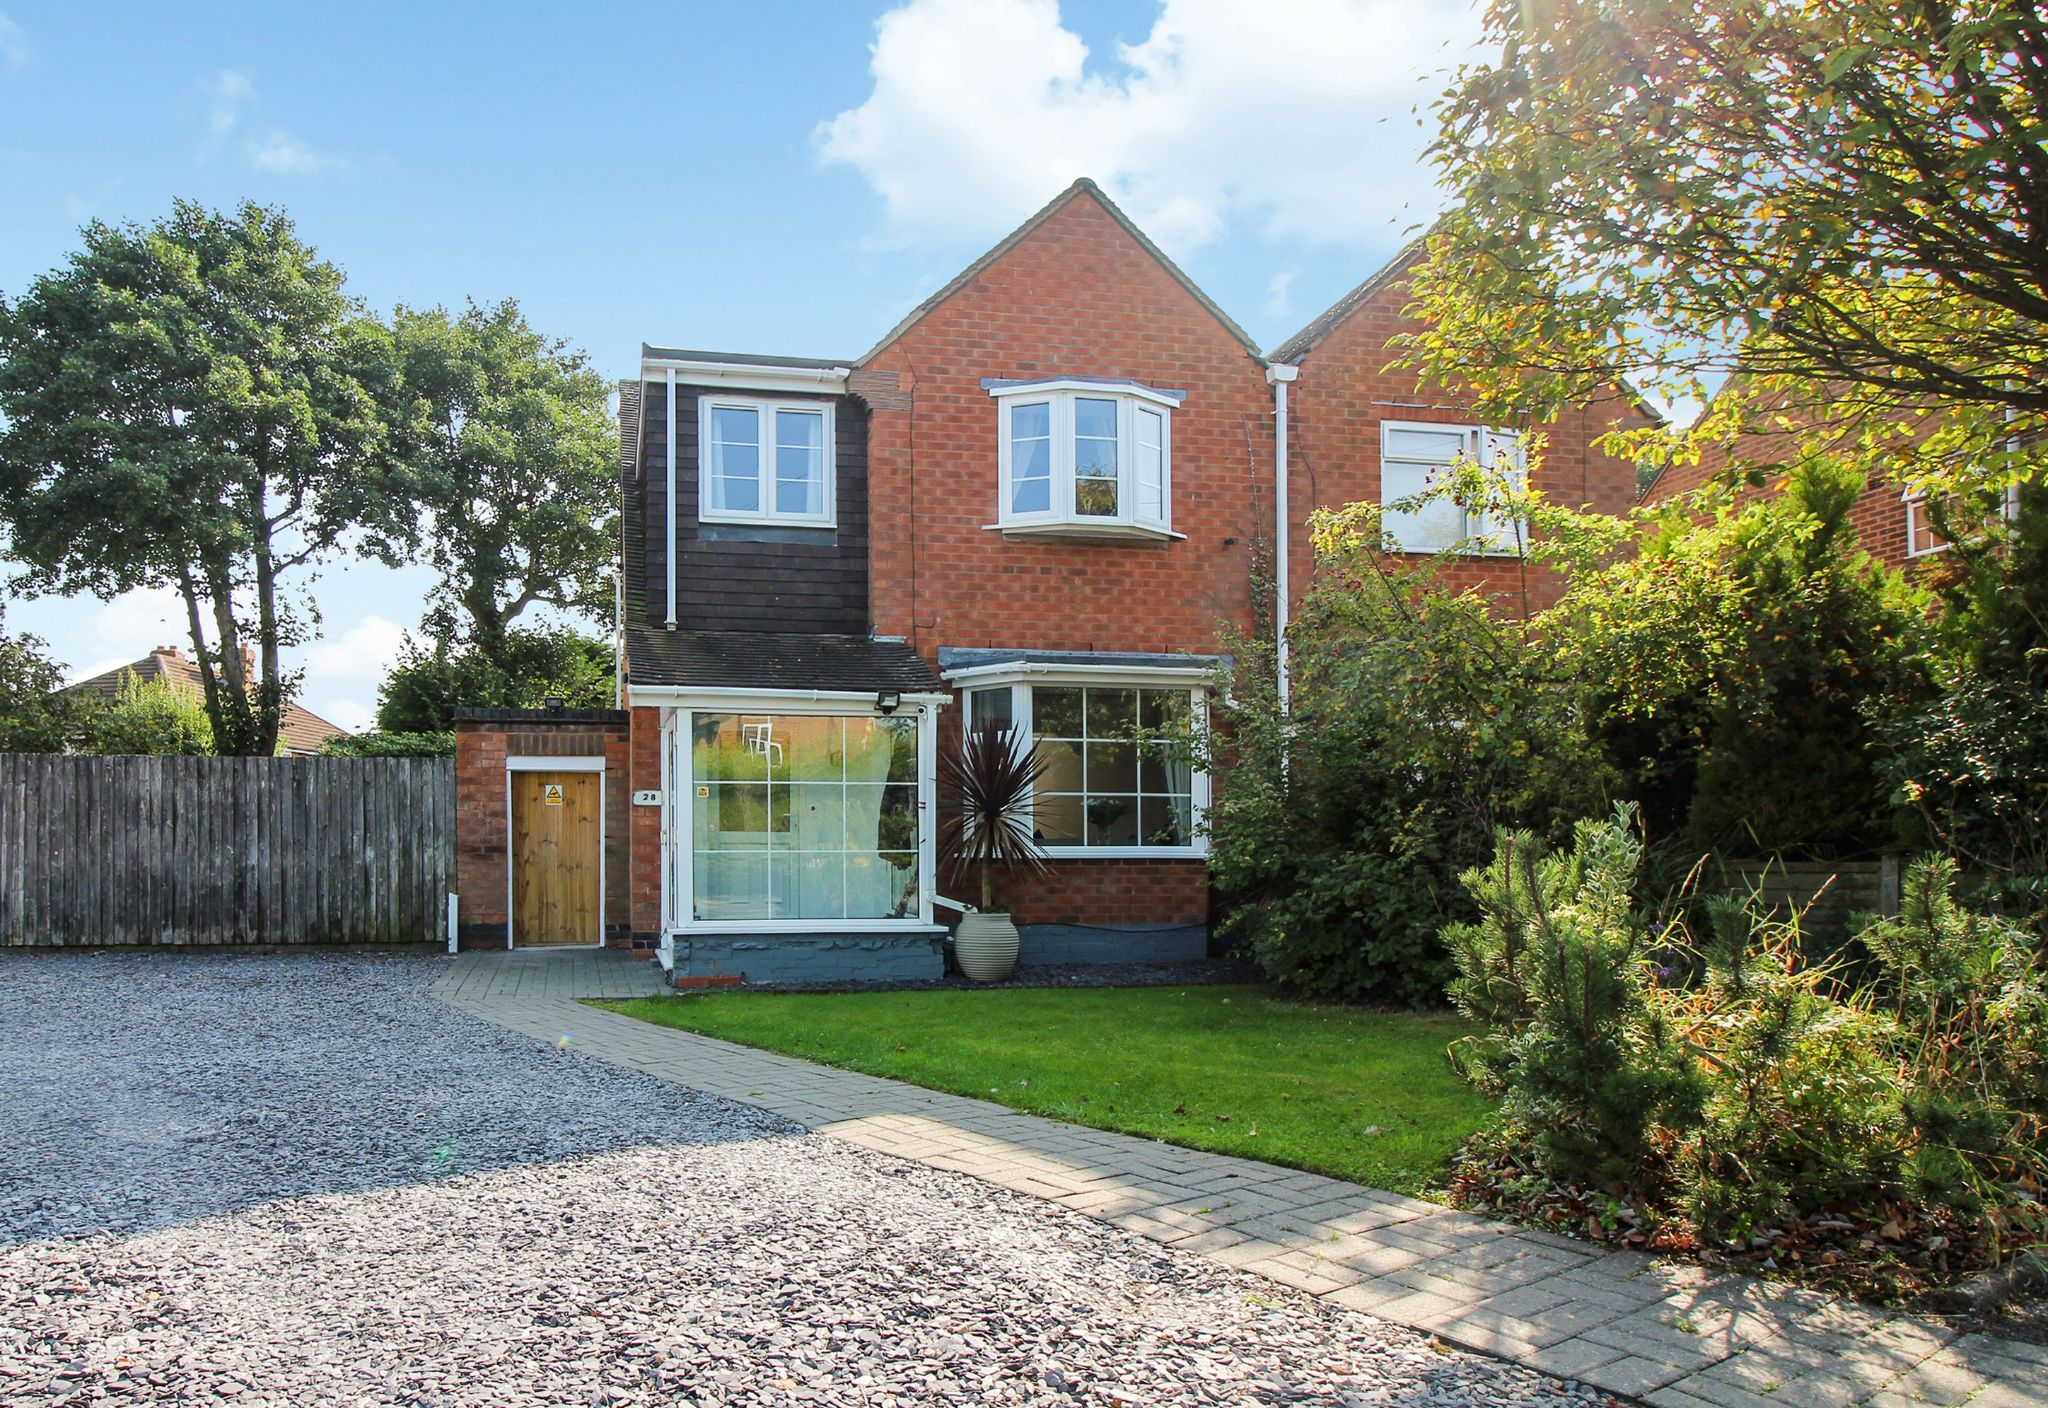 3 bedroom semi-detached house For Sale in Solihull - Property photograph.